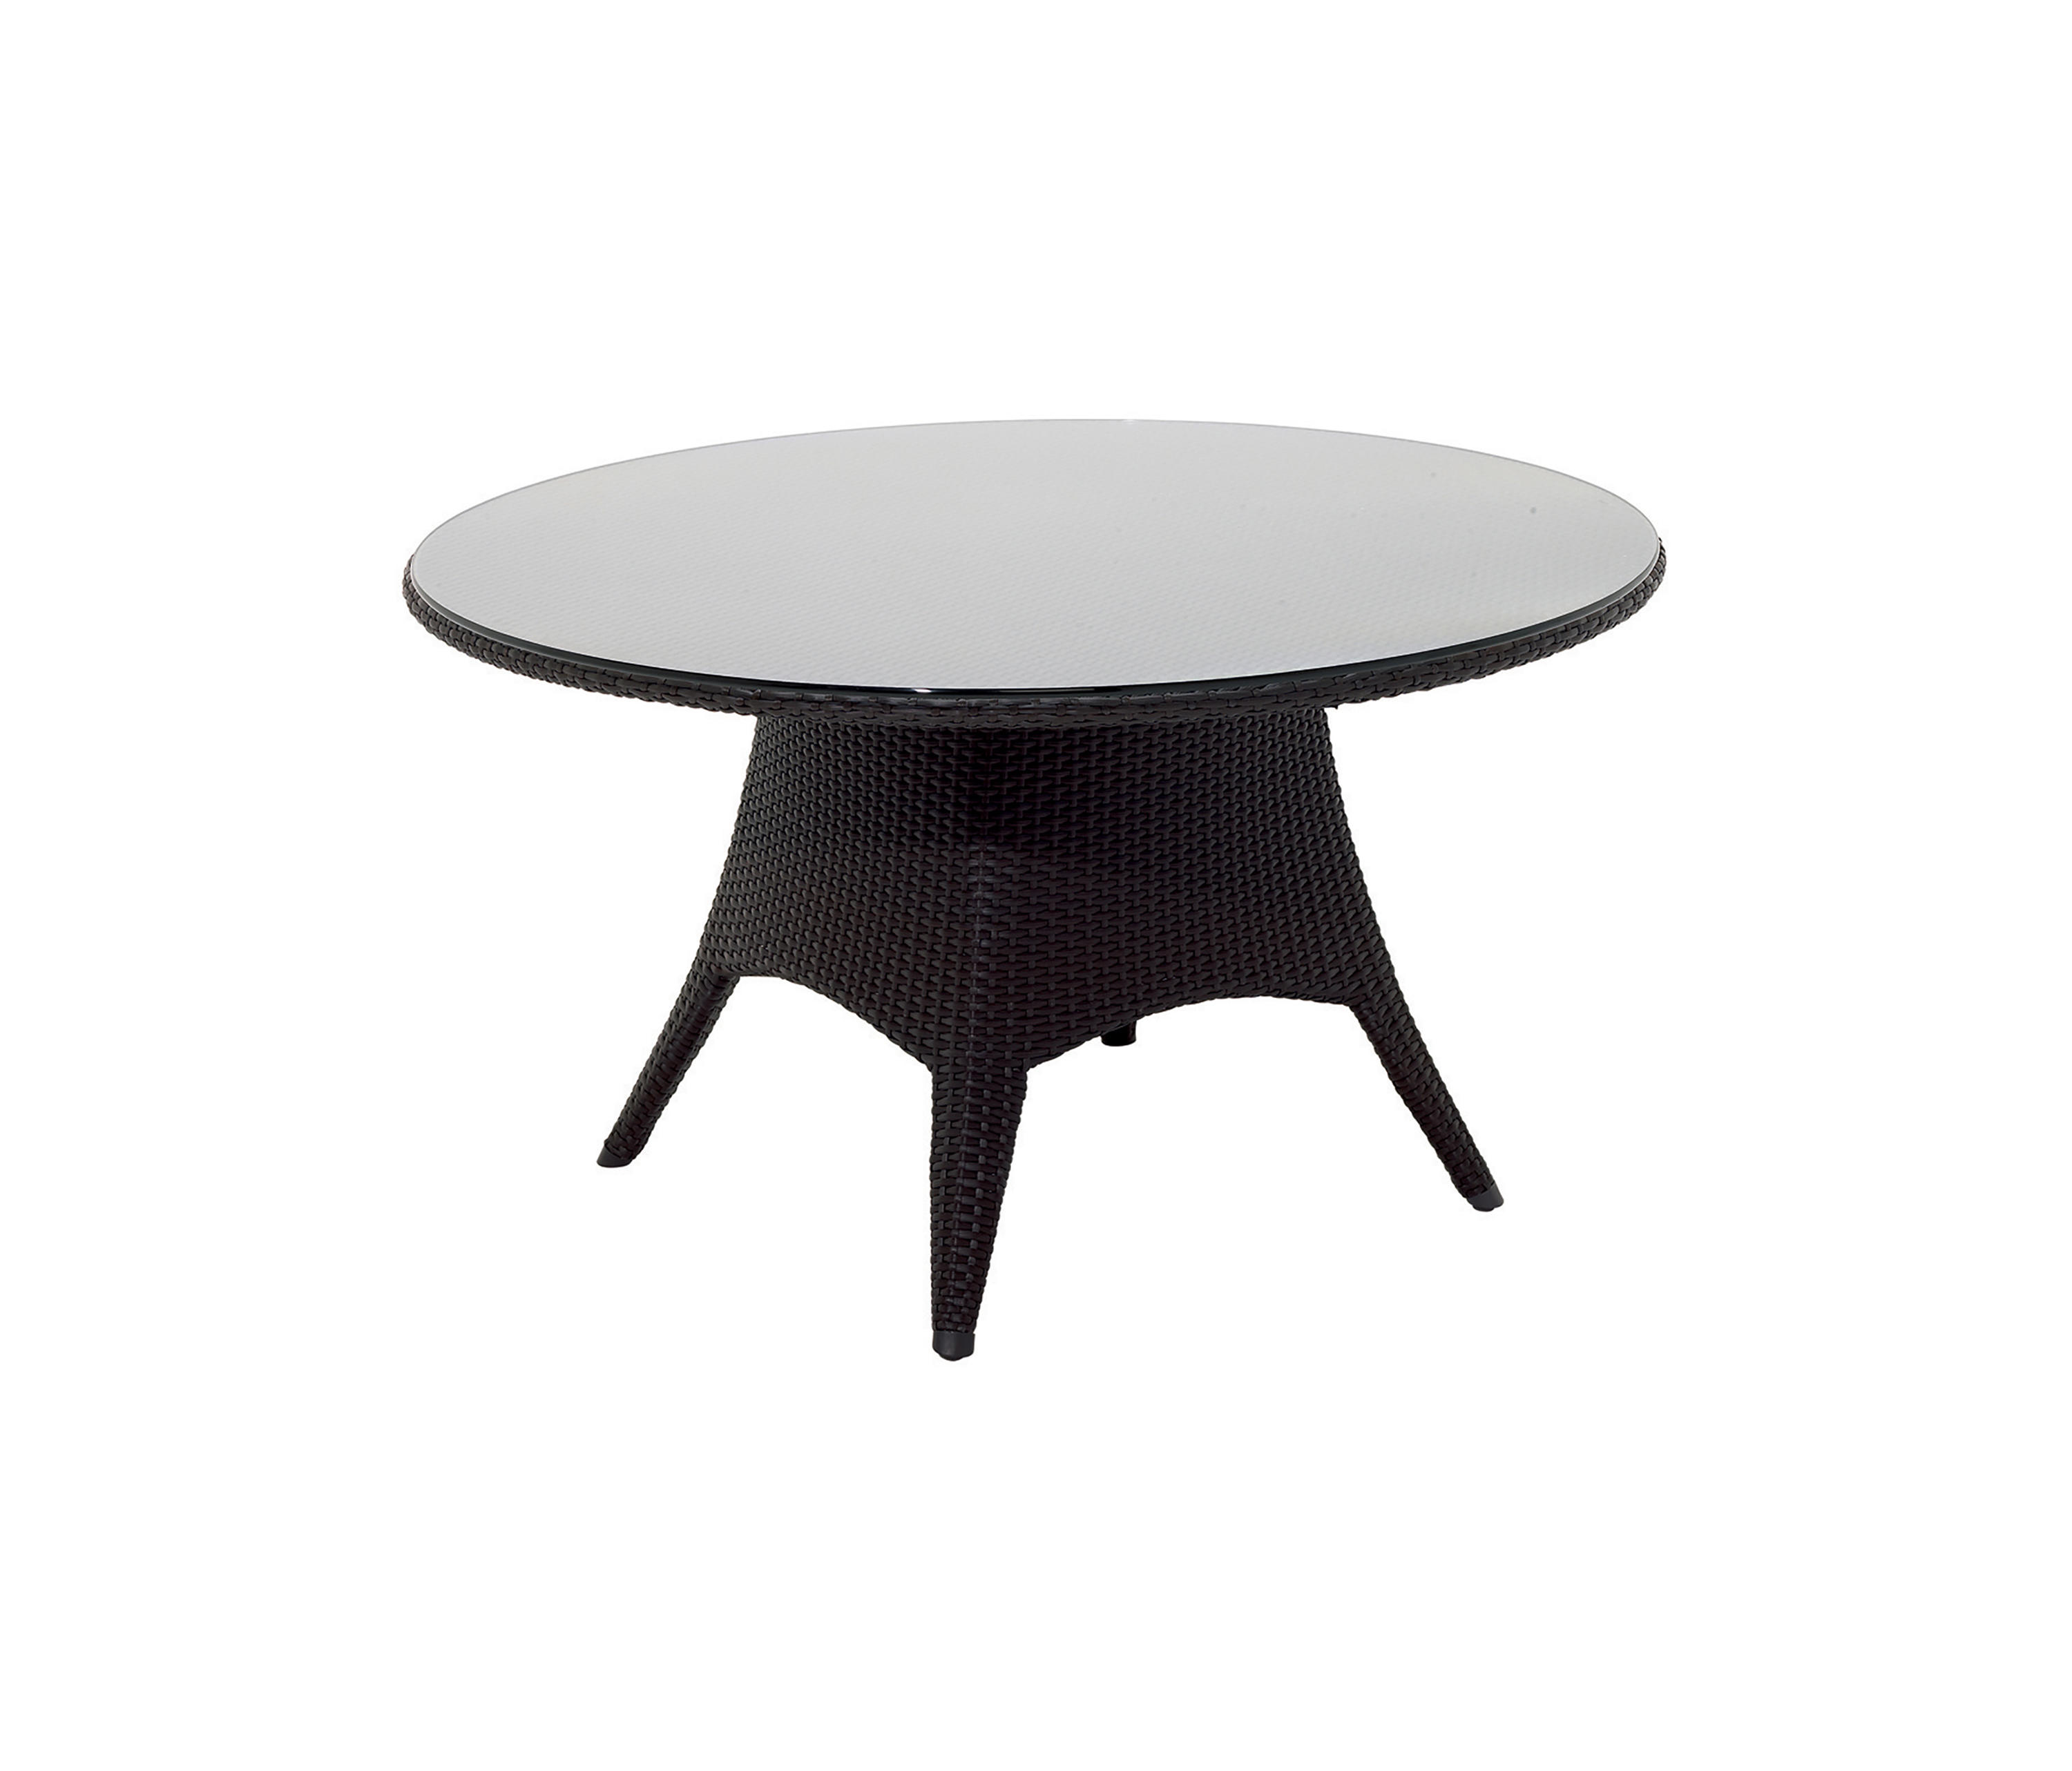 Plantation round 5 seater table dining tables from gloster furniture gmbh architonic - Seater round dining table ...